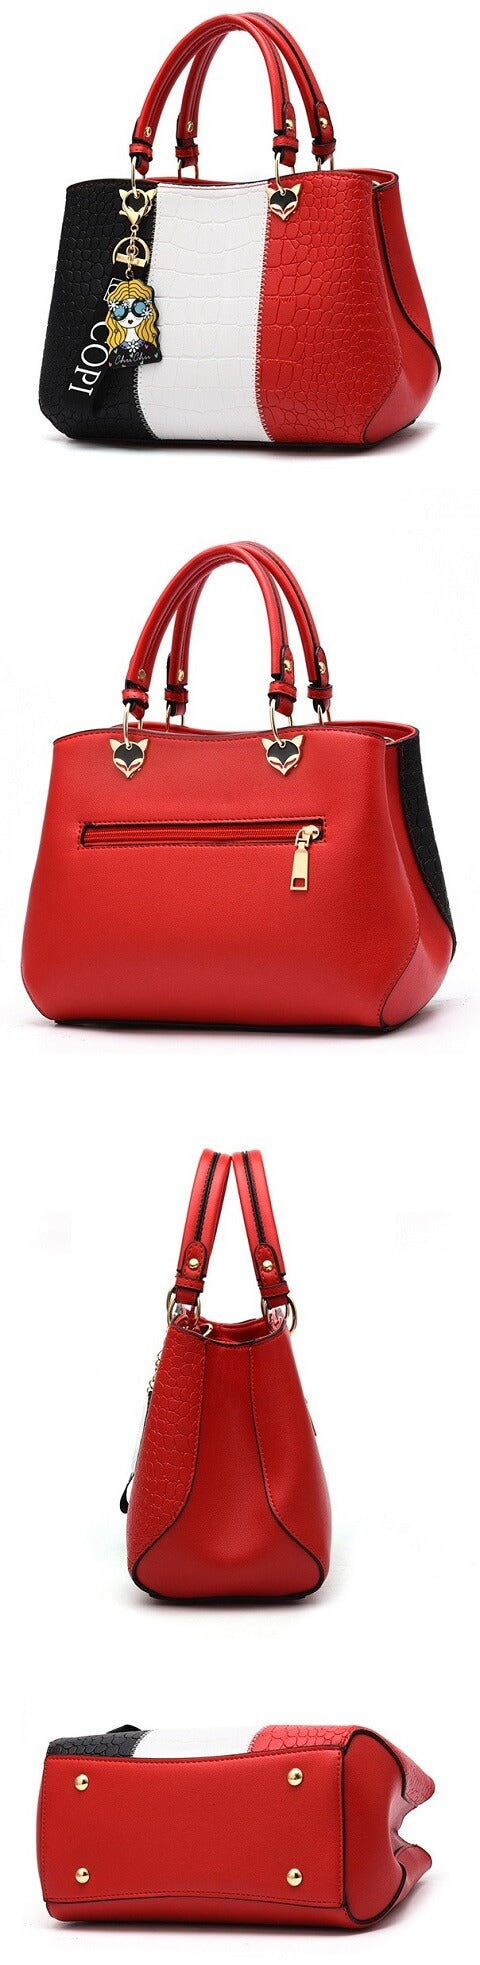 Meghan Richardson handbag can be transformed from a crossbody bag to a top-handle bag to suit your ensembles.